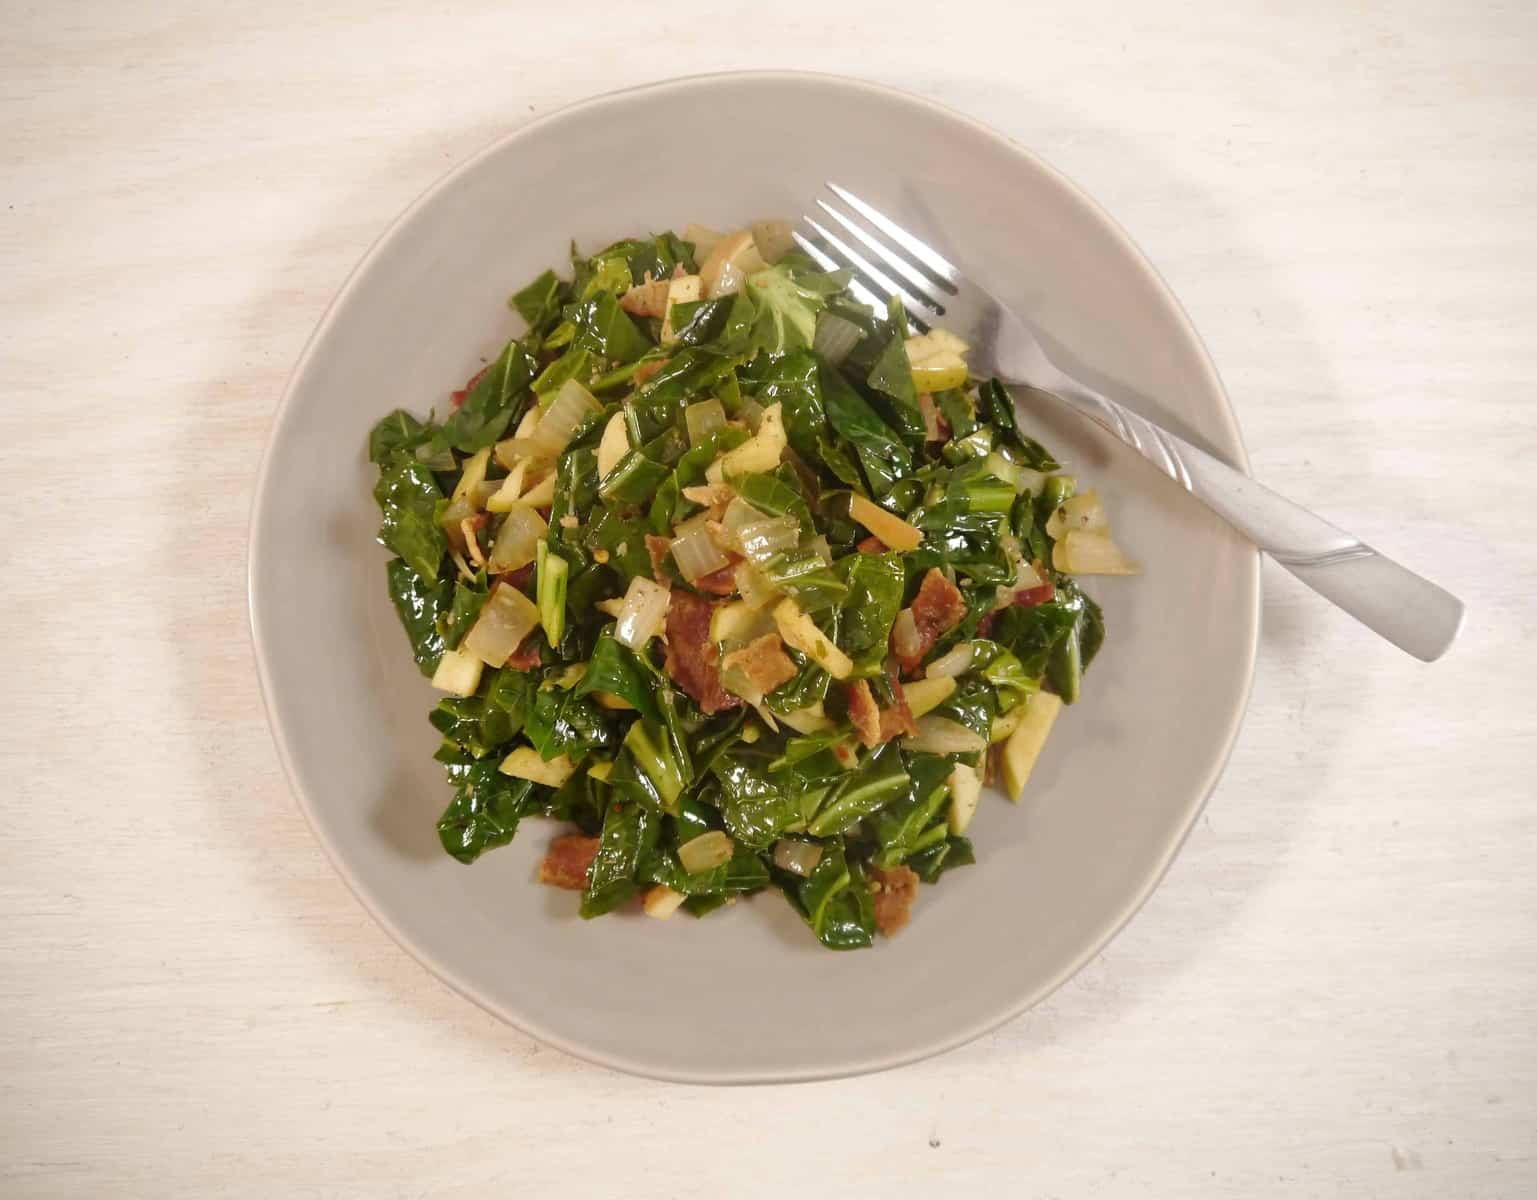 Braised Greens with White Wine, Bacon and Apples